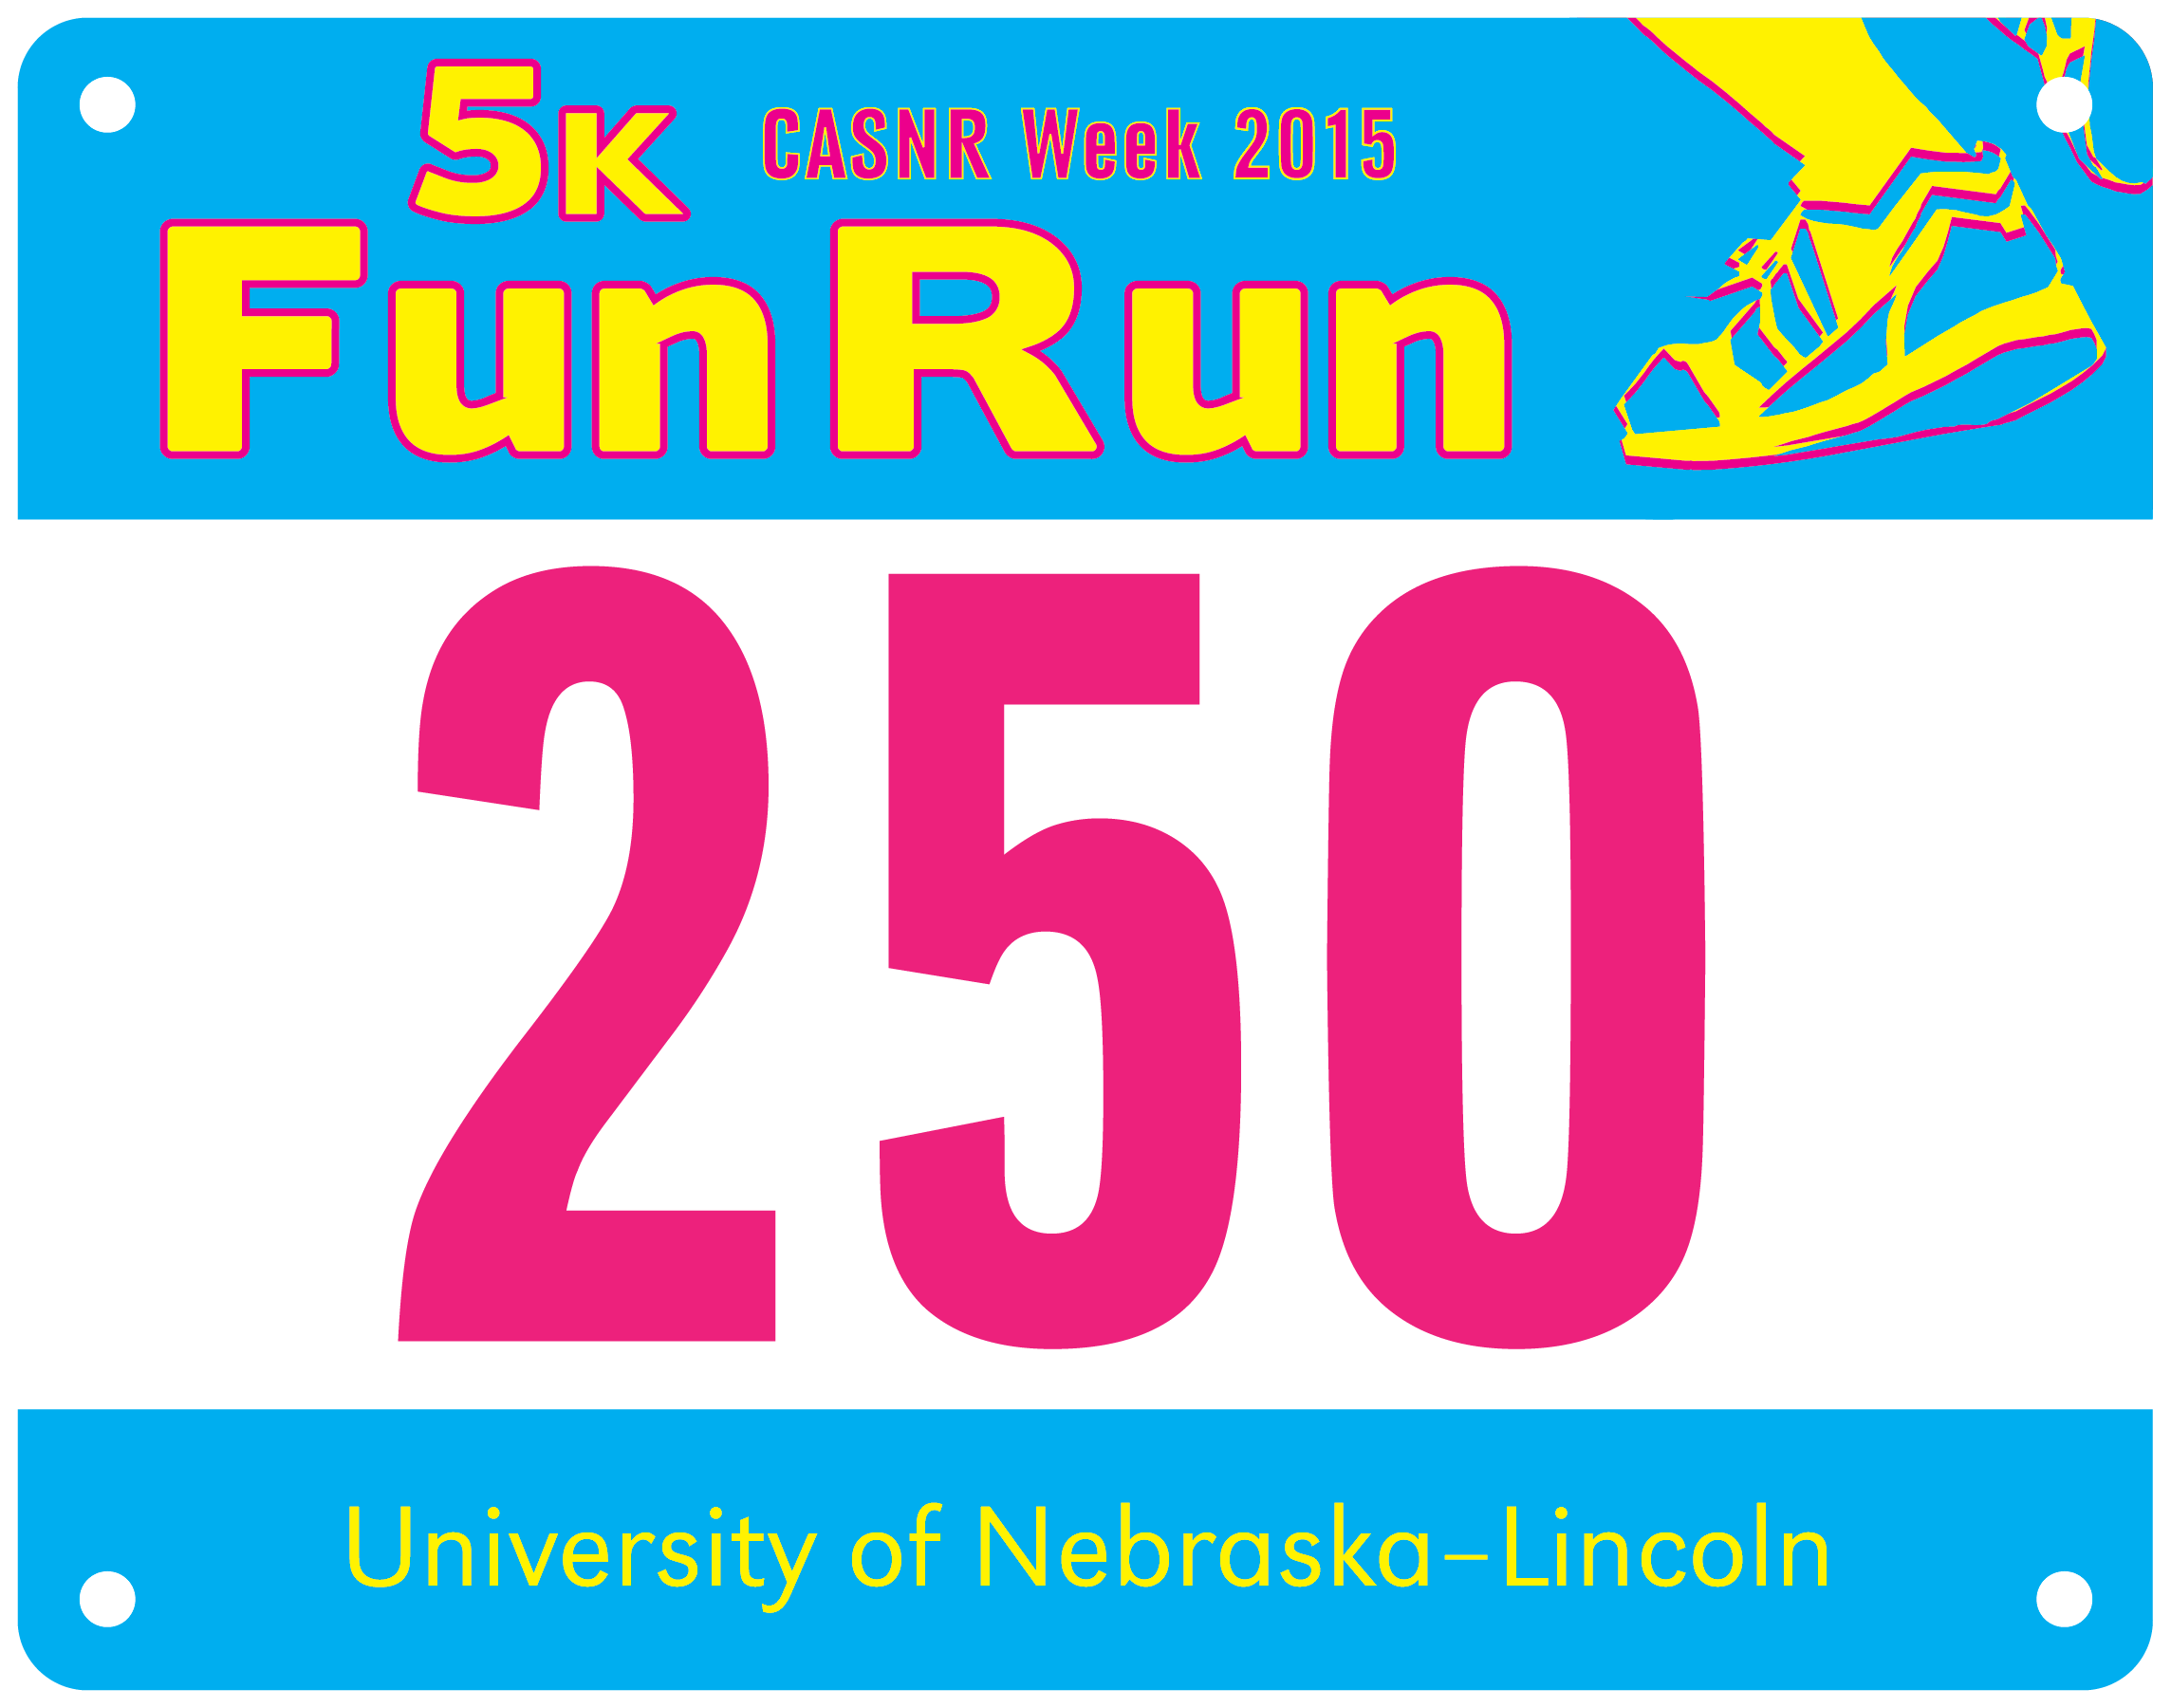 Every registered participant receives an offical CASNR Fun Run race bib and number.